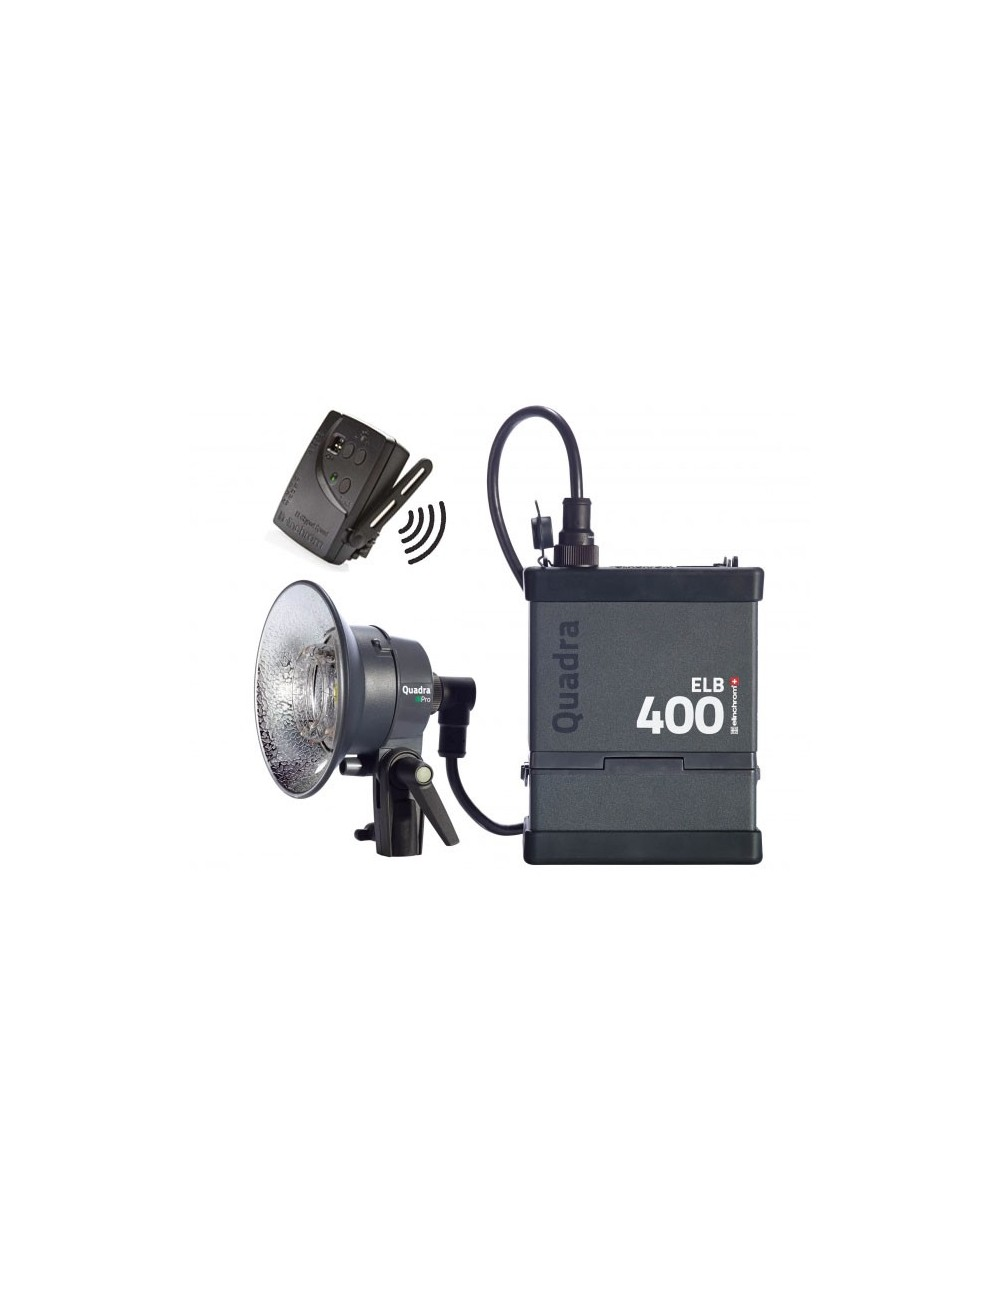 Kit ELB 400 One Pro Head To Go Elinchrom